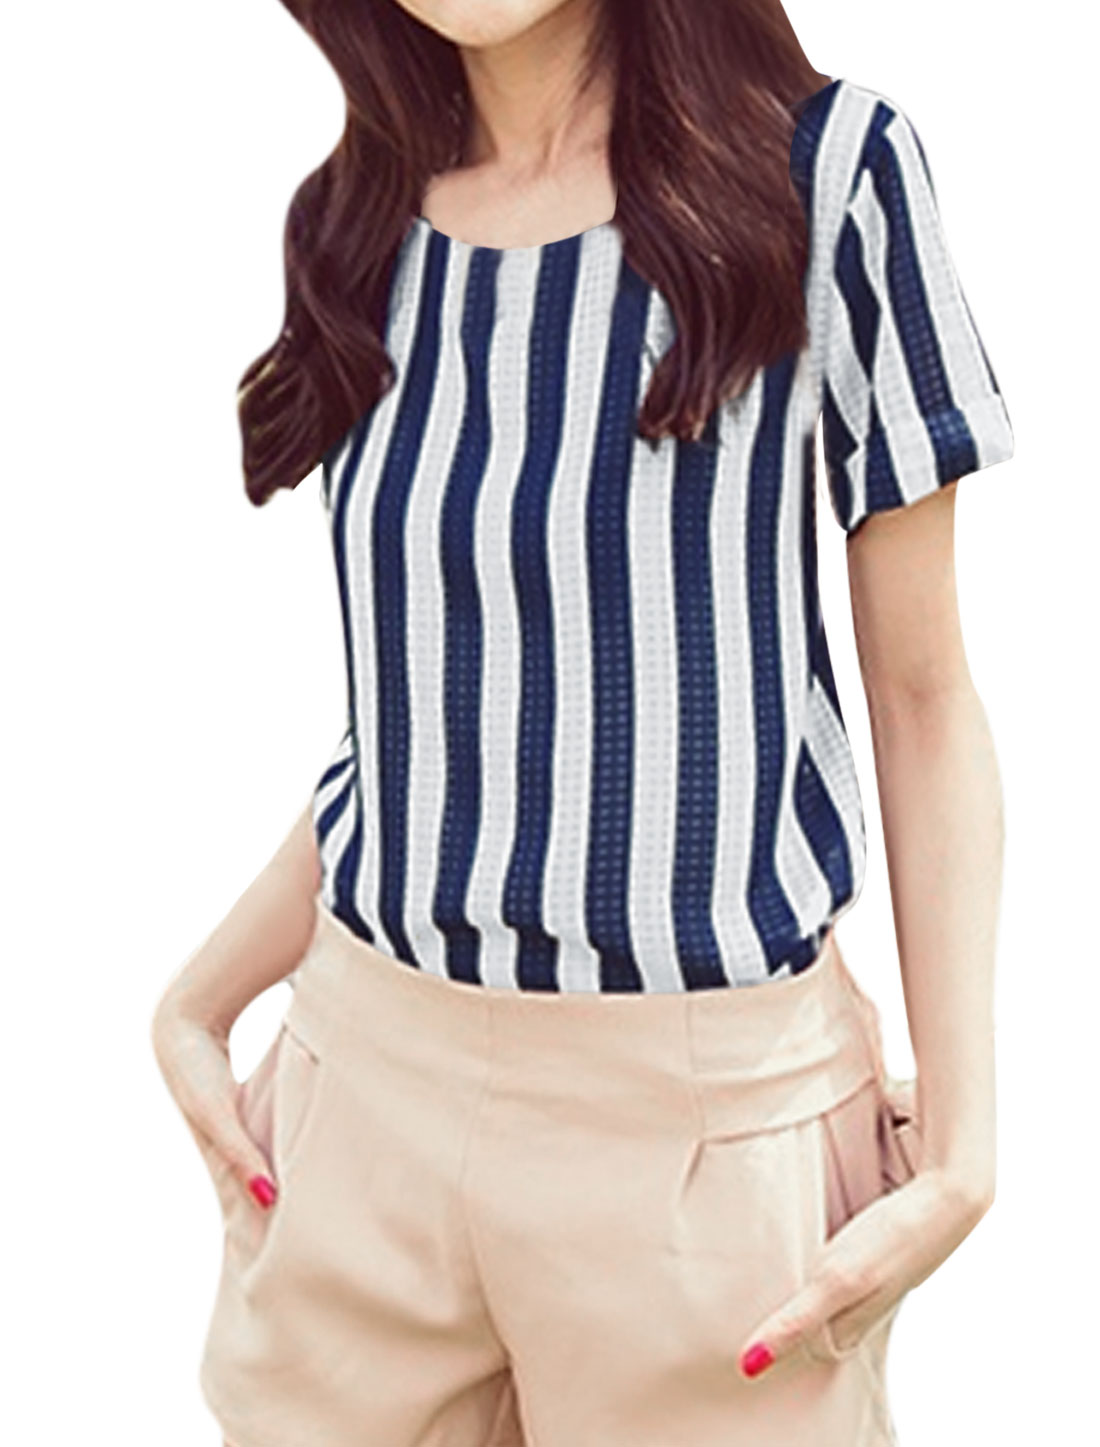 Lady Round Neck Stripes Prints T-Shirt White Navy Blue XS